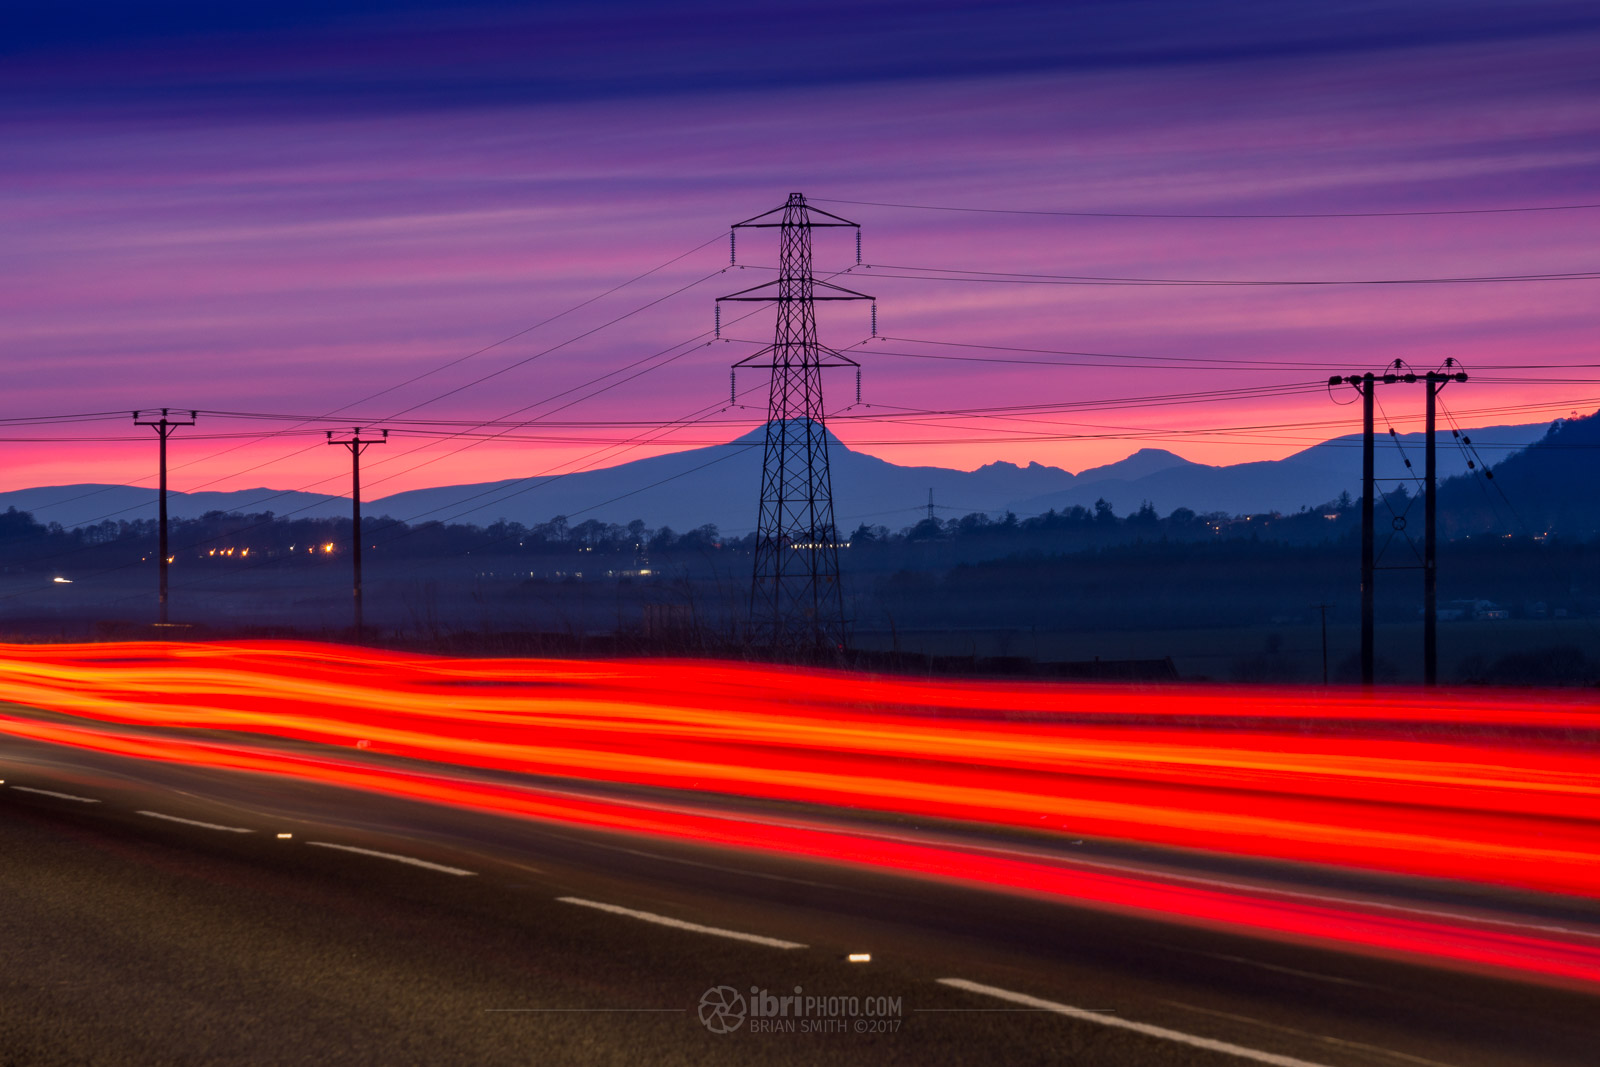 Light Trails and a pink sky, about 35 minutes after sunset, from near Tullibody, Clackmannanshire. Sony Nex 7 - Sony E 55-210mm f4.5-6.3 OSS - 110mm - 10sec - f4.5 - ISO100